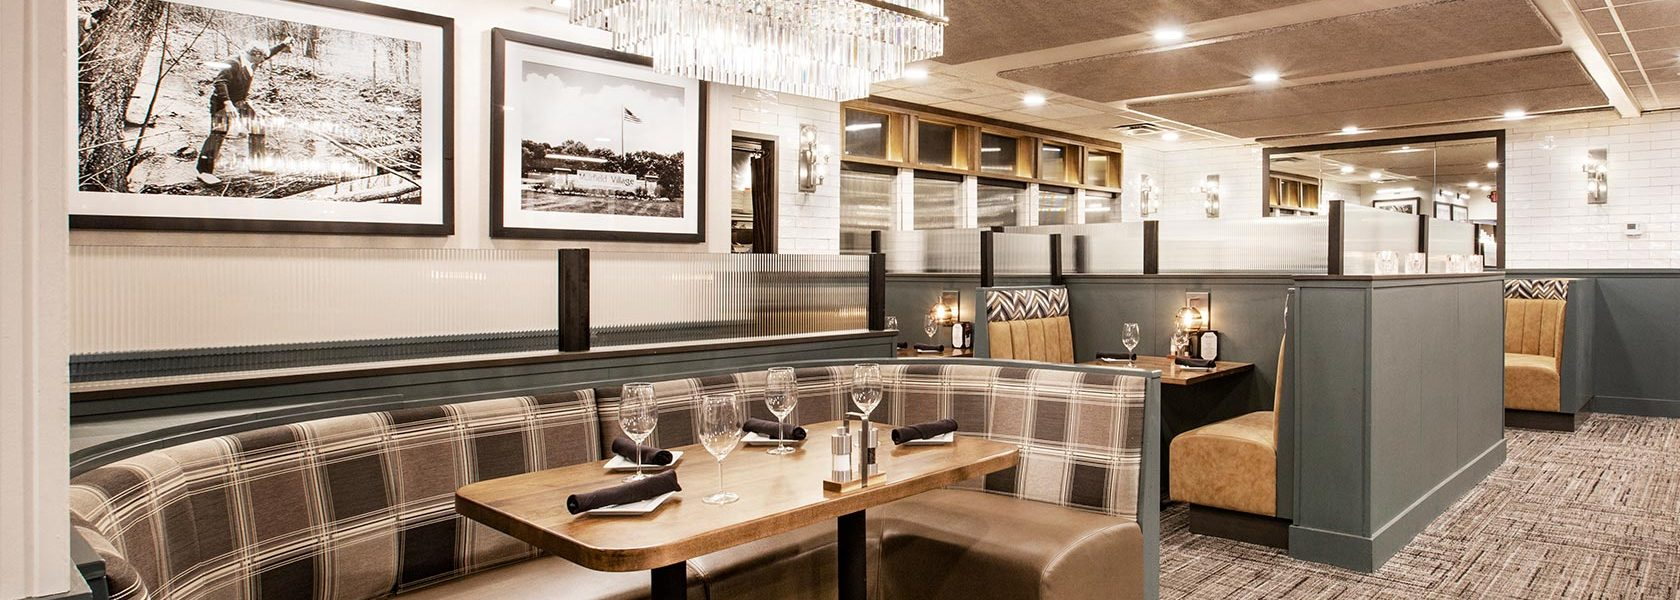 Open dining room area with booth seating and black and white large photography on walls.